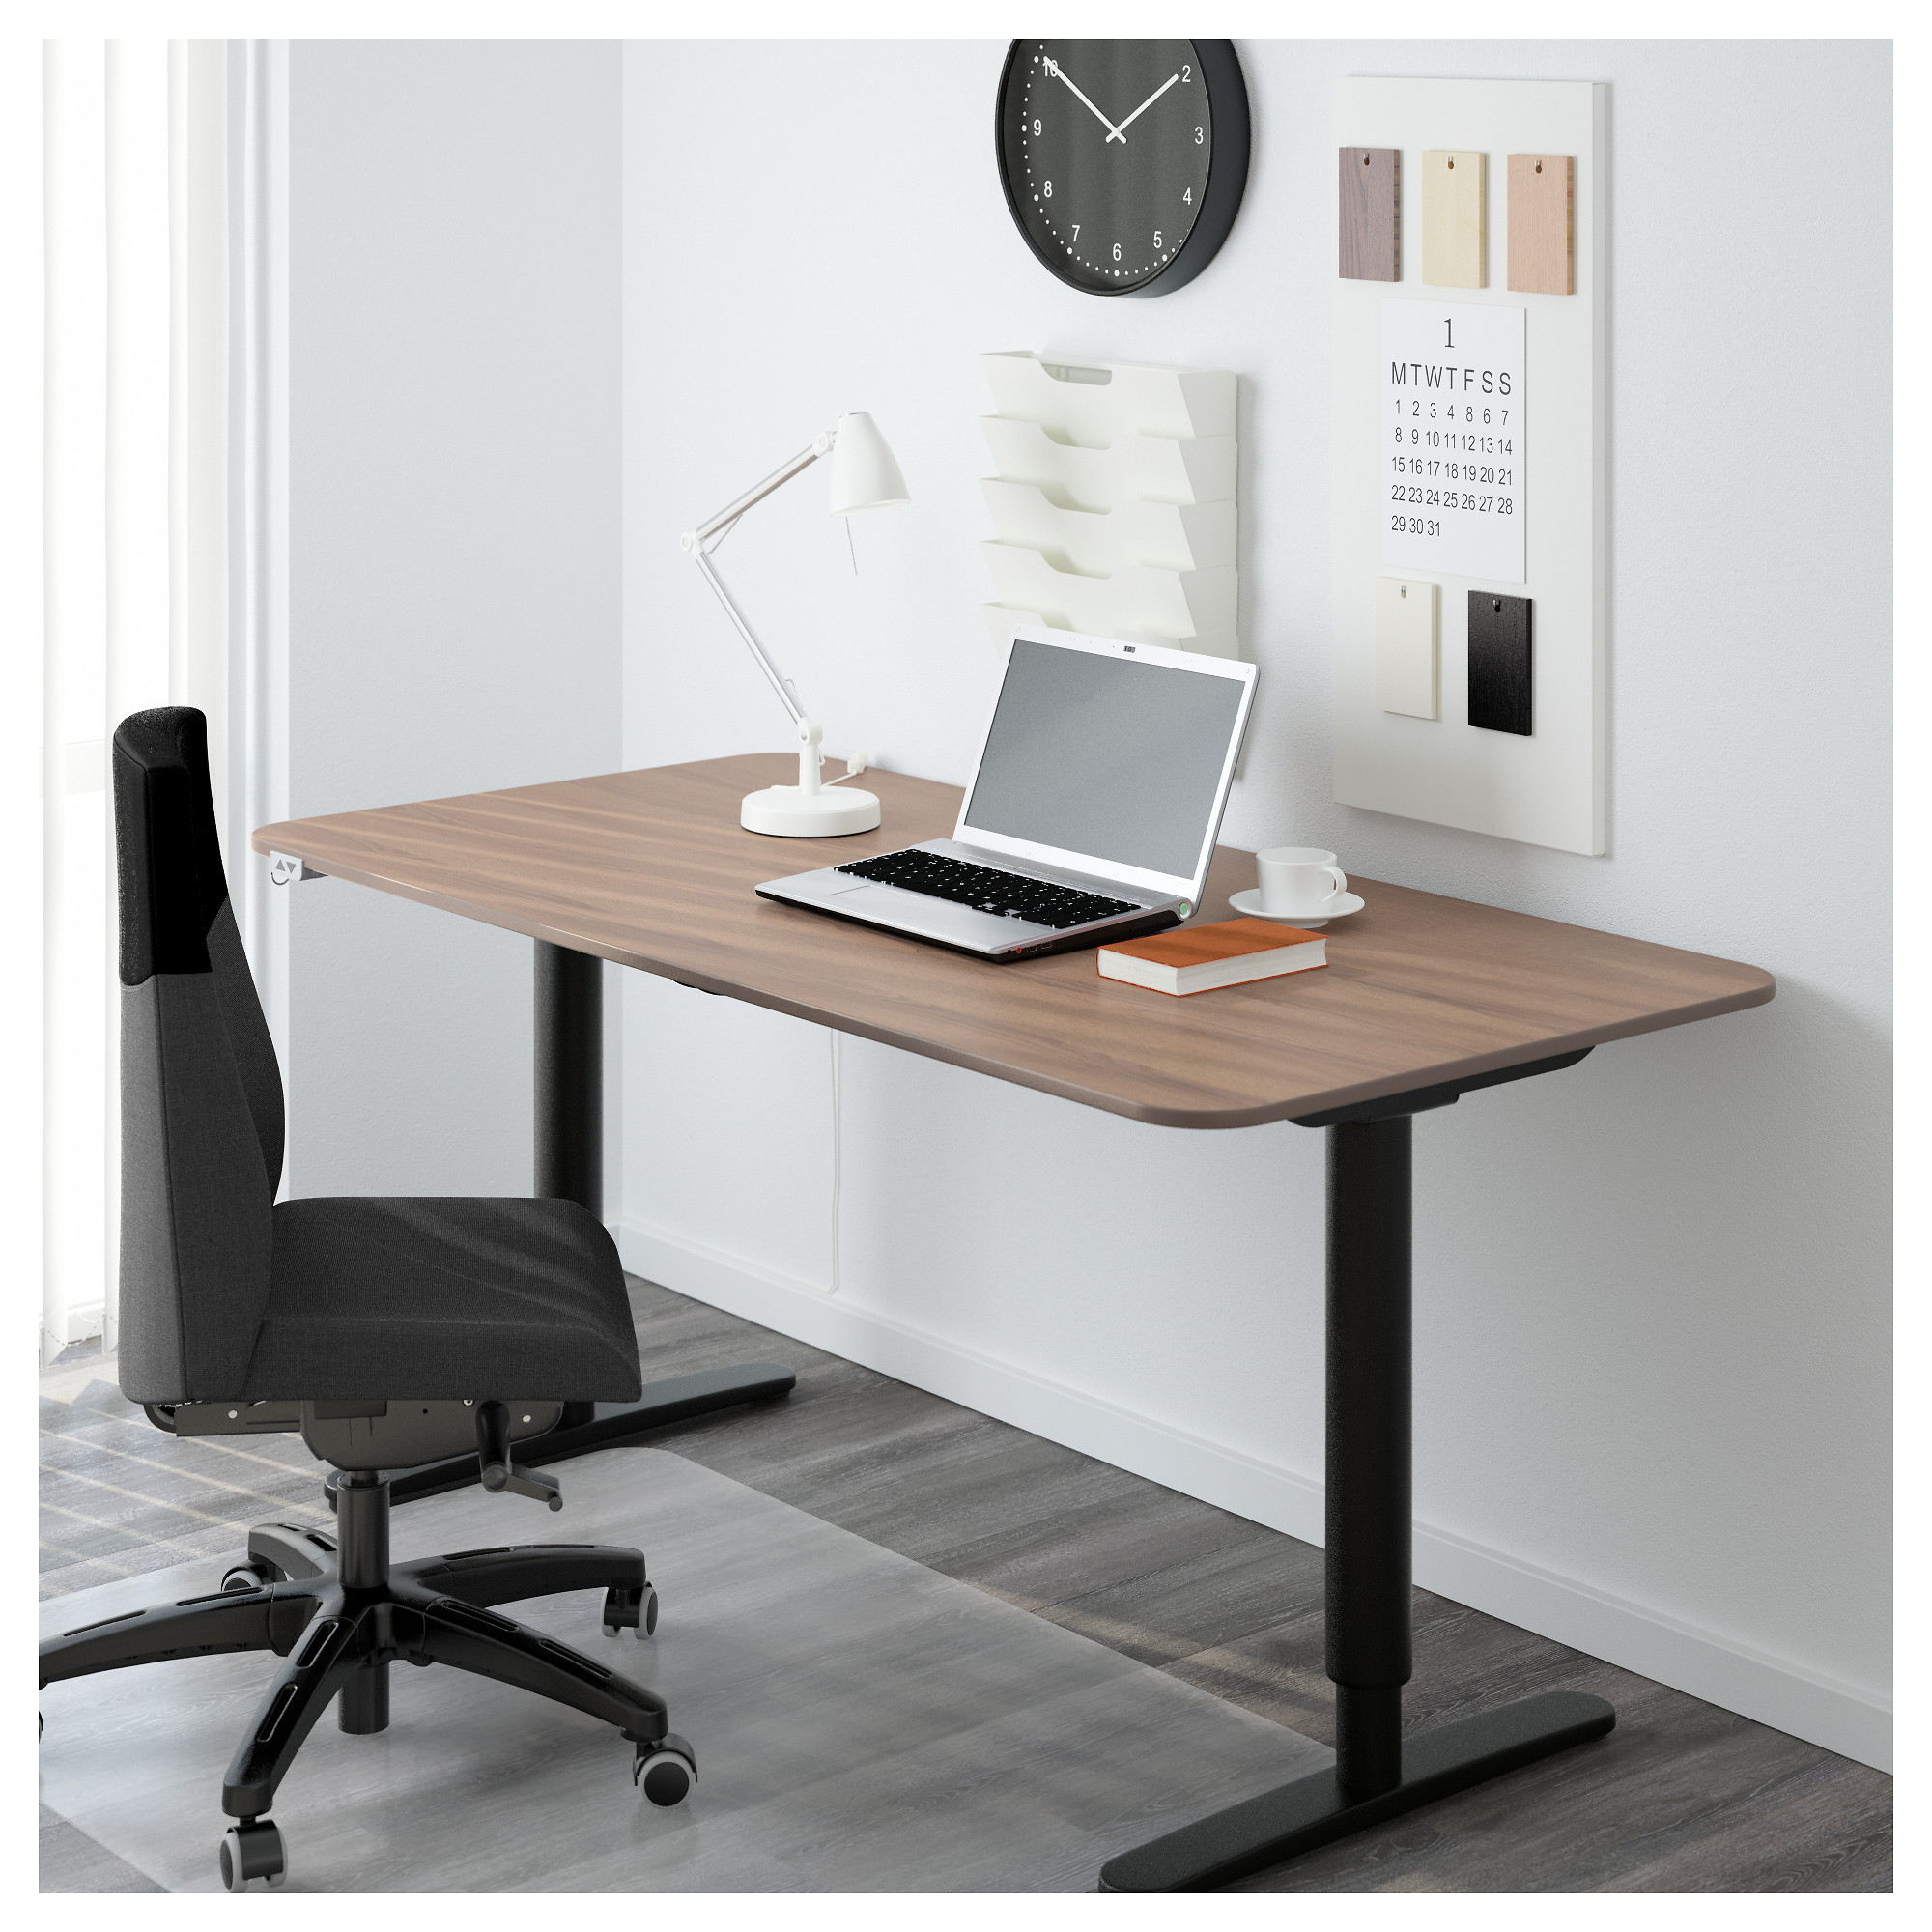 Marvelous BEKANT Desk Sit/stand   Black Brown/white   IKEA